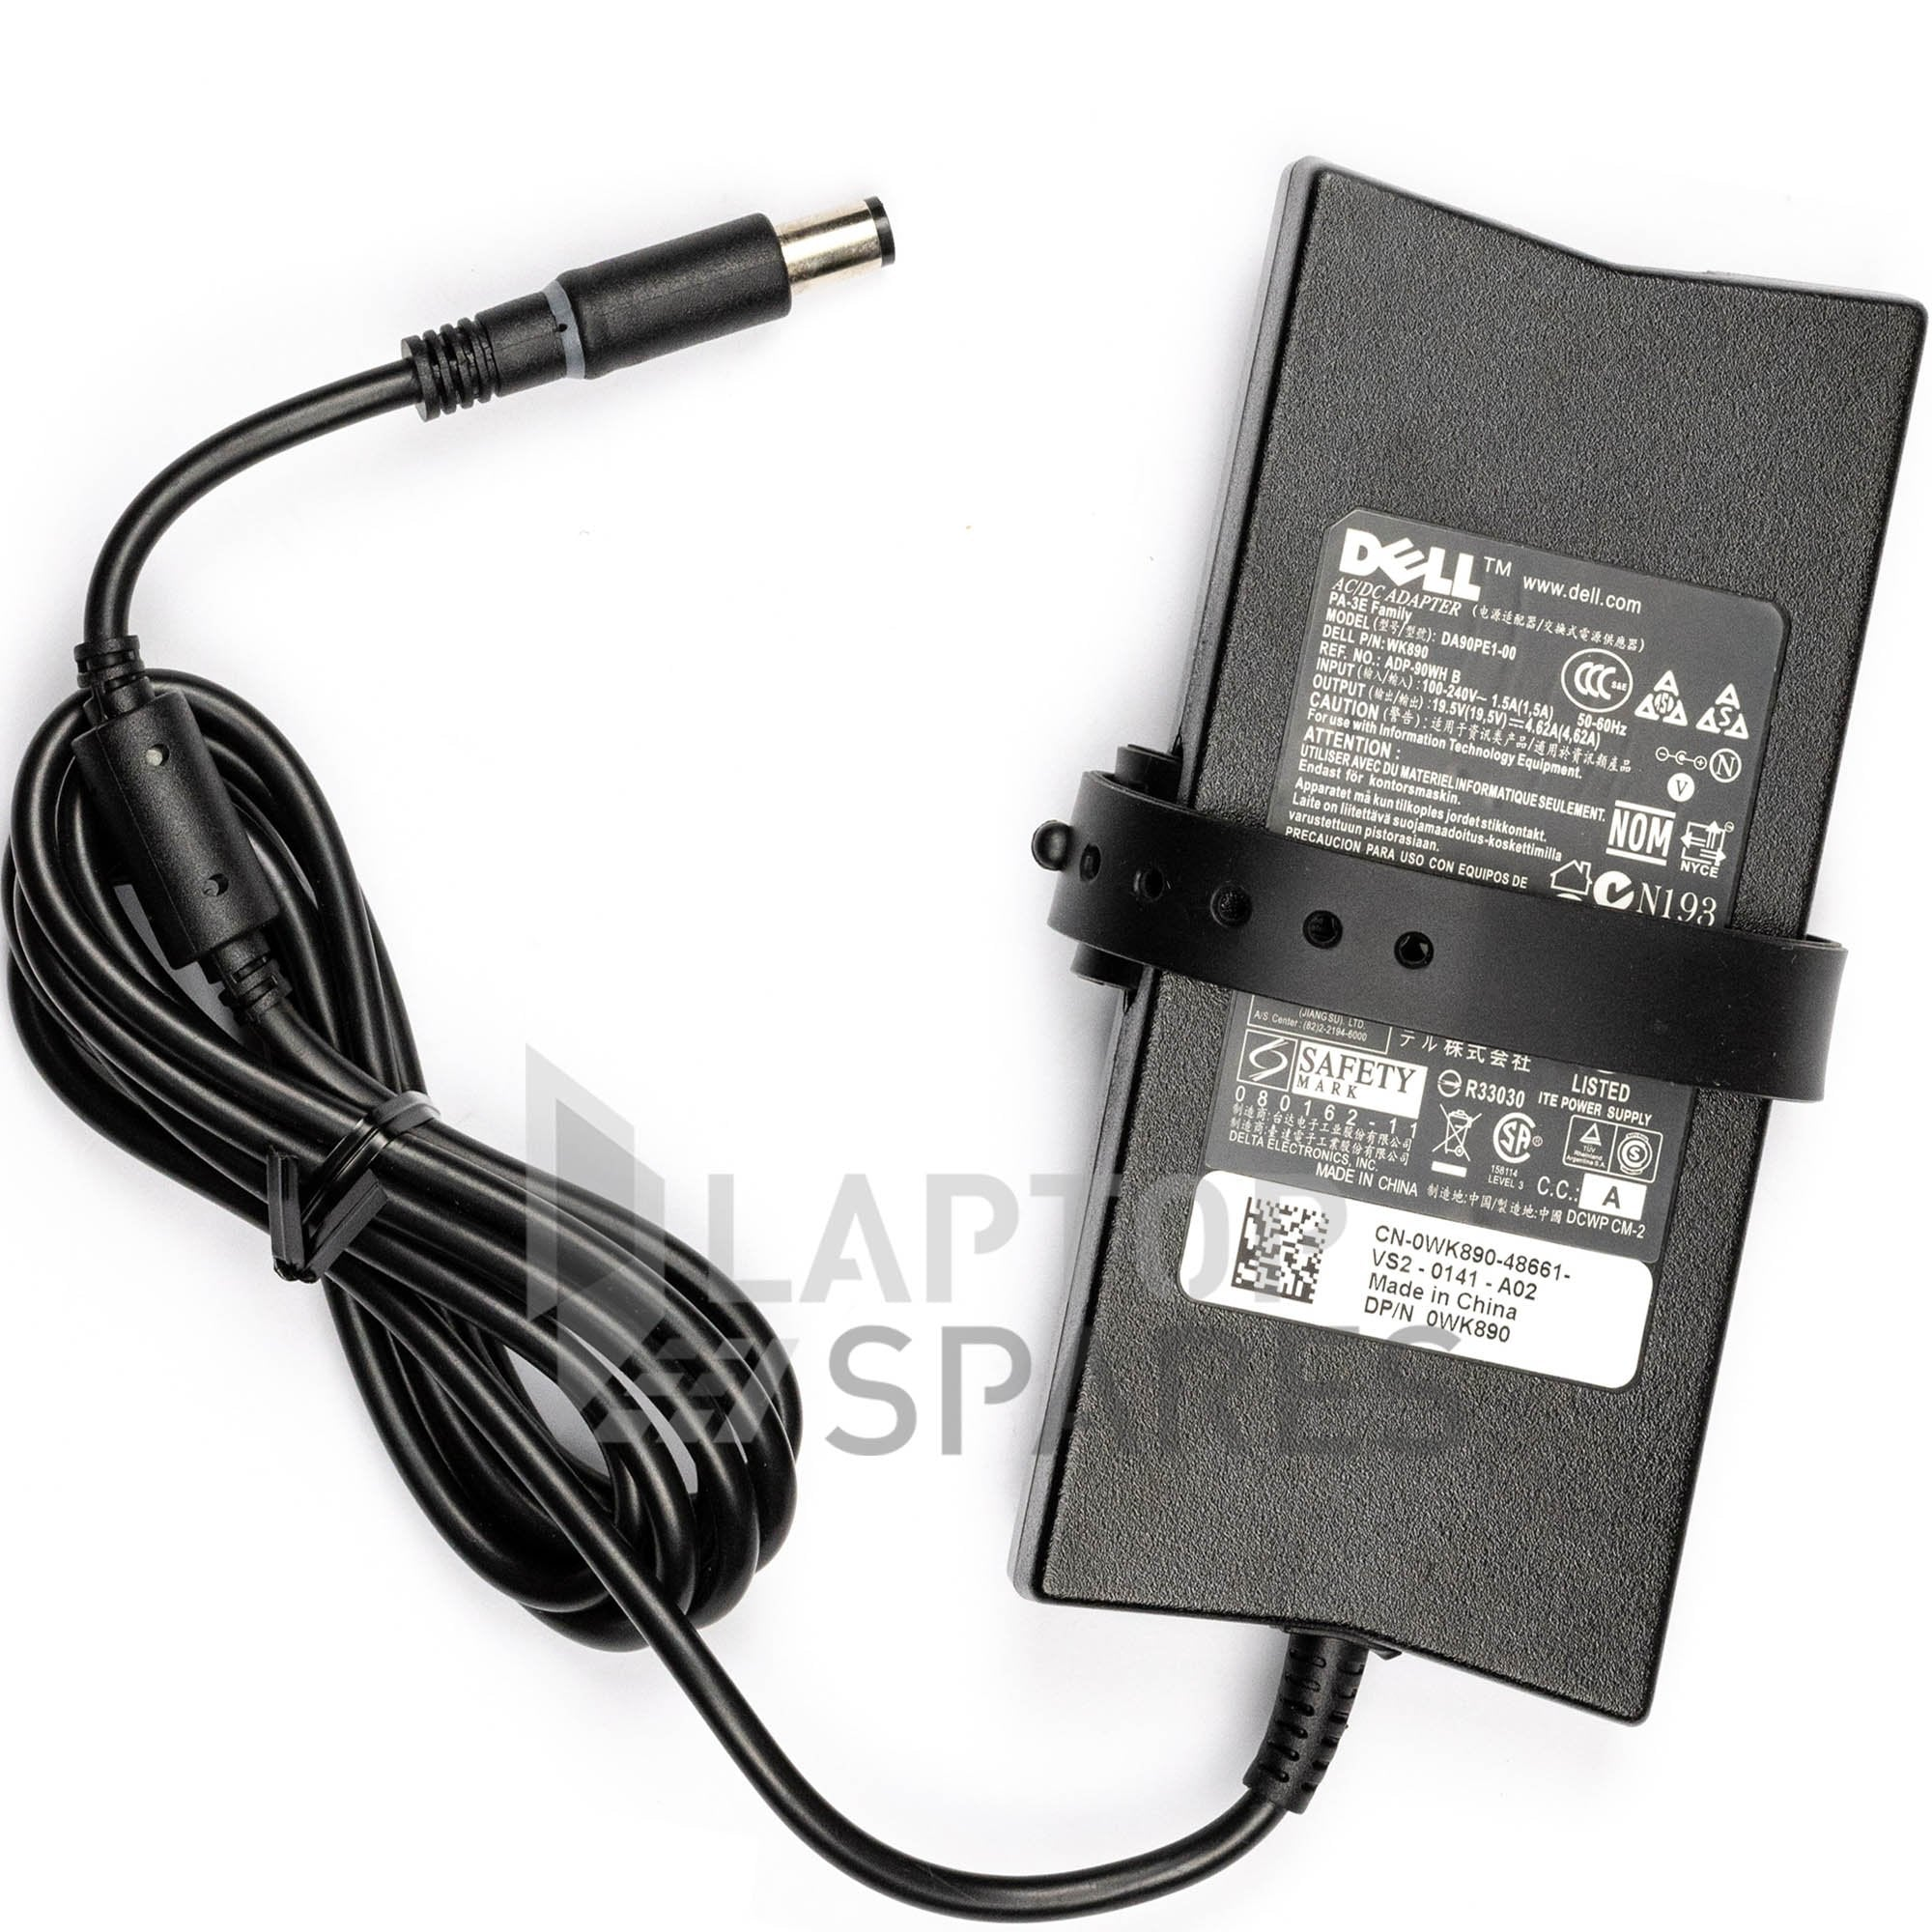 Dell Inspiron 300m Blade 2 Laptop Slim AC Adapter Charger